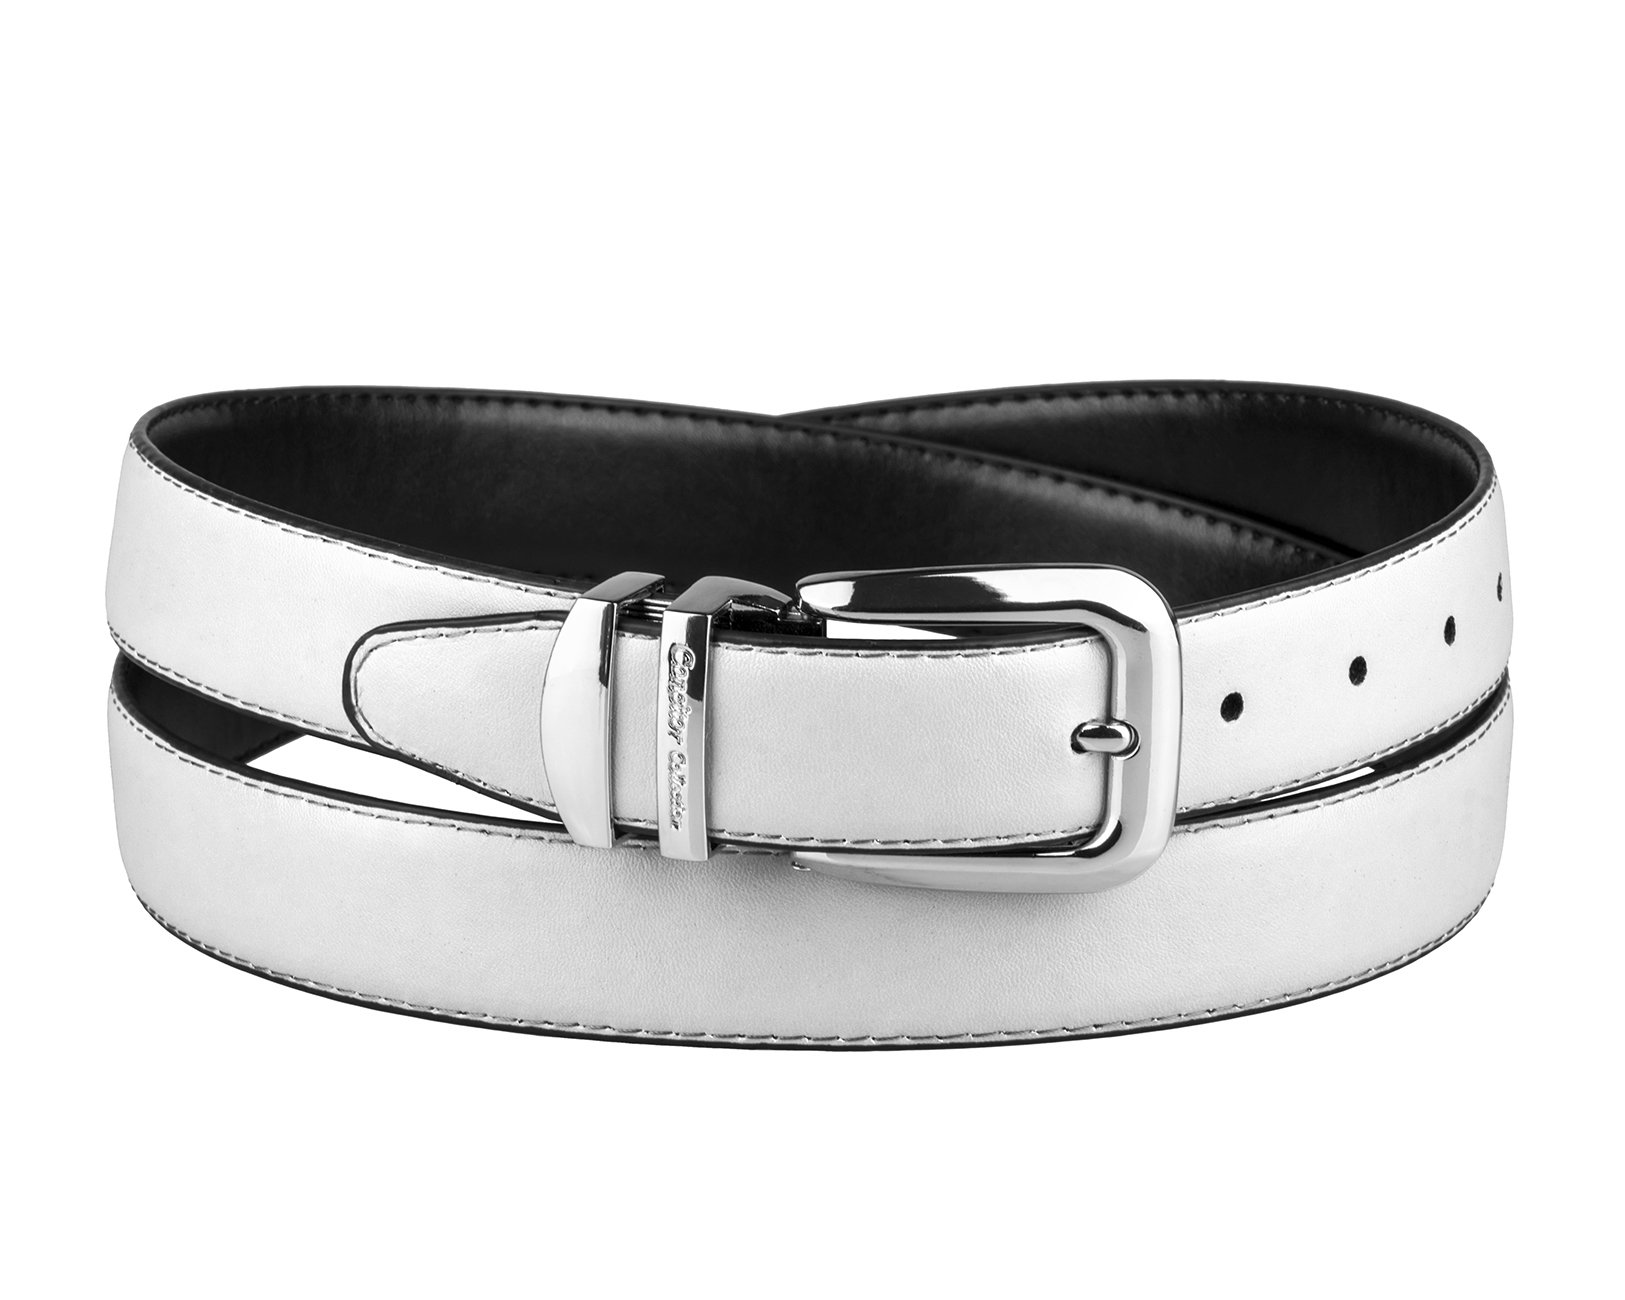 CONCITOR Reversible Wide Belt WHITE Black Bonded Leather Silver-Tone Buckle 48 by Concitor (Image #1)